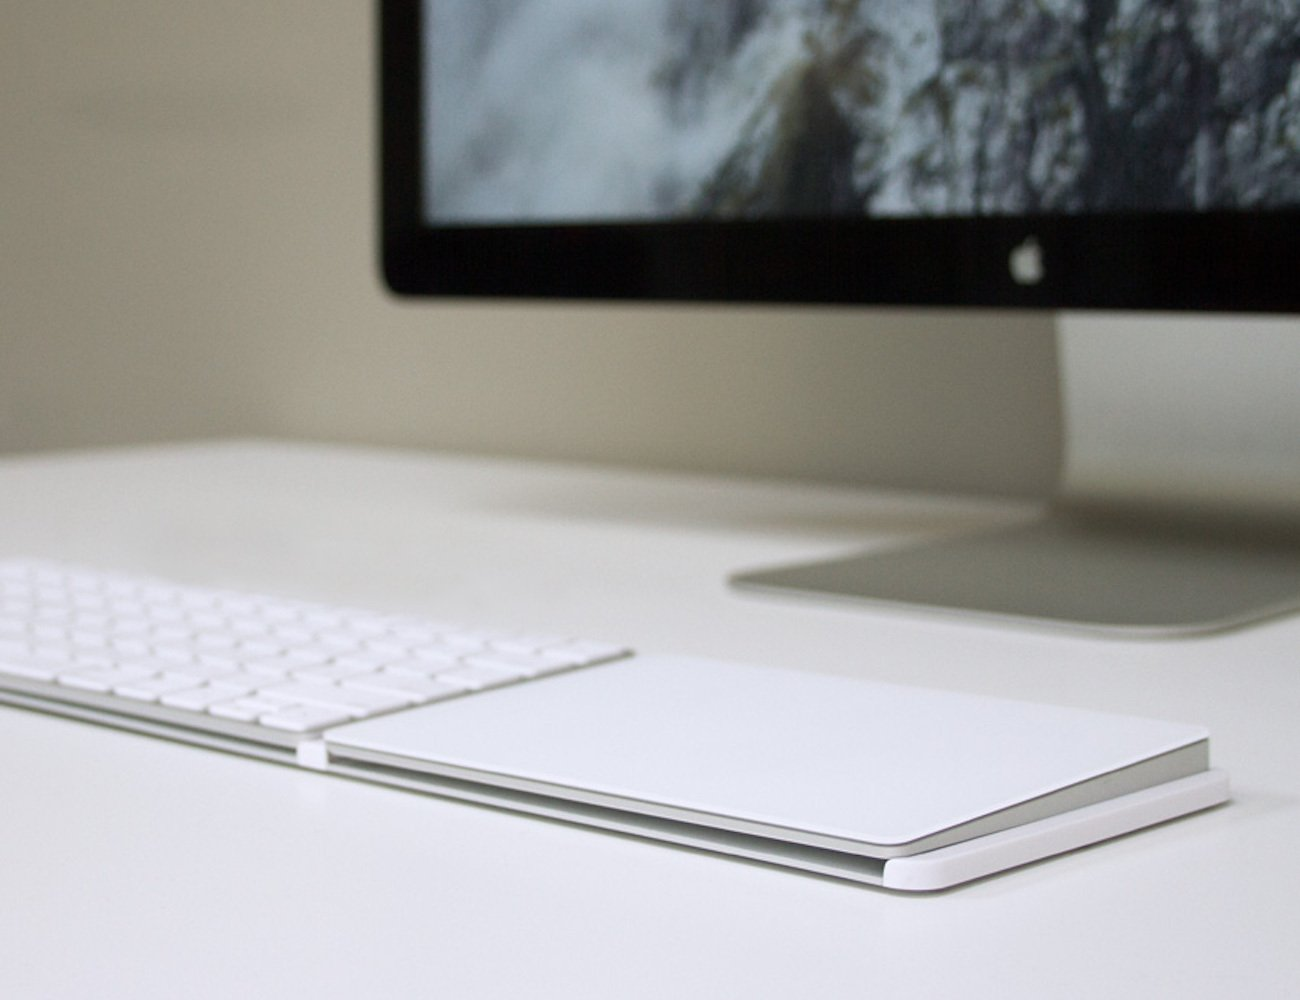 Clique2 Attachment Surface for Apple Keyboard and Trackpad